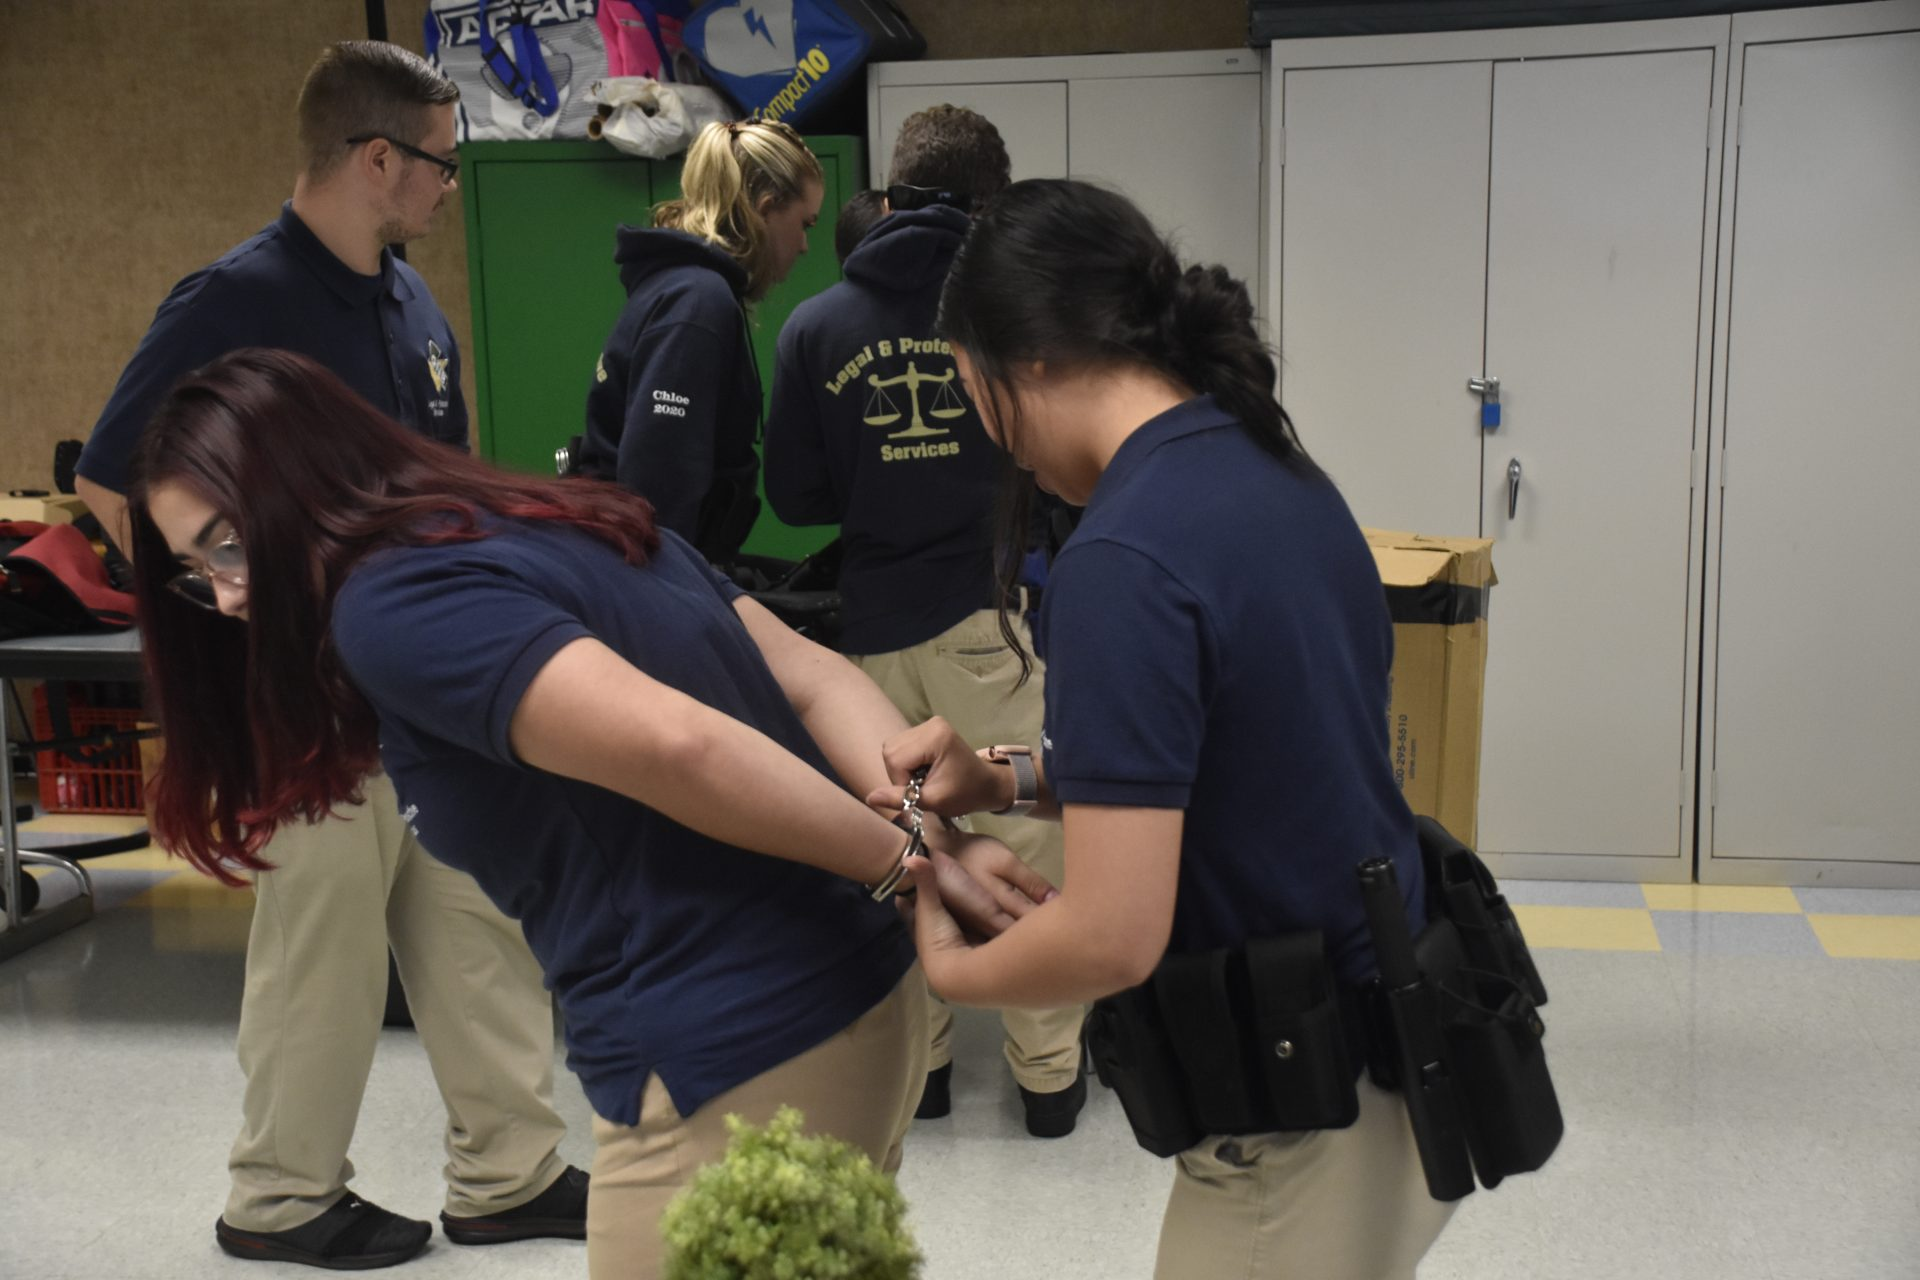 Two Students Practicing Arrests